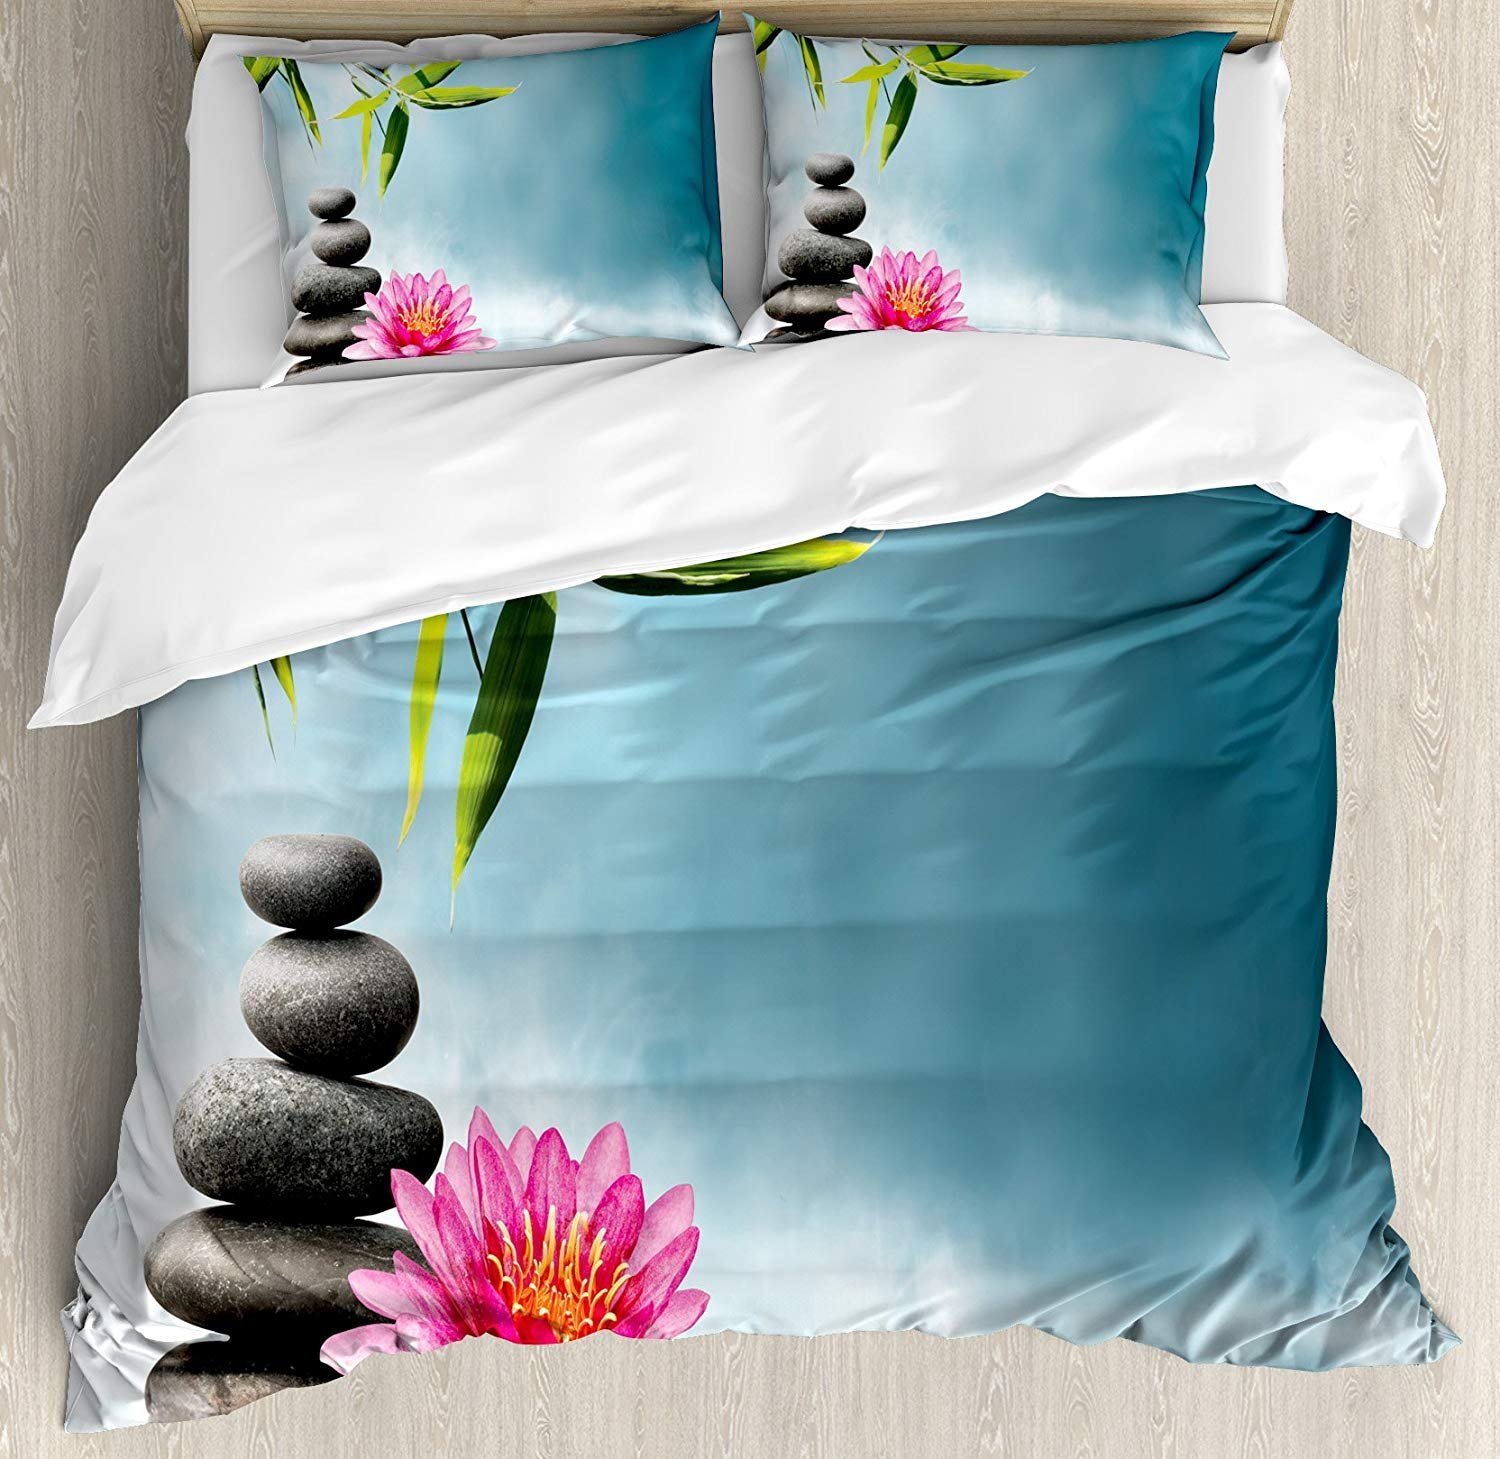 WomenFoucs Spa Twin Bedding Comforter Sets All-Season 4pc Duvet Cover Set Quilt Bedspread for Adult/Kids/Teens, Spa Theme with Lily Lotus Flower and Rocks Yoga Style Purifying Your Soul Theme